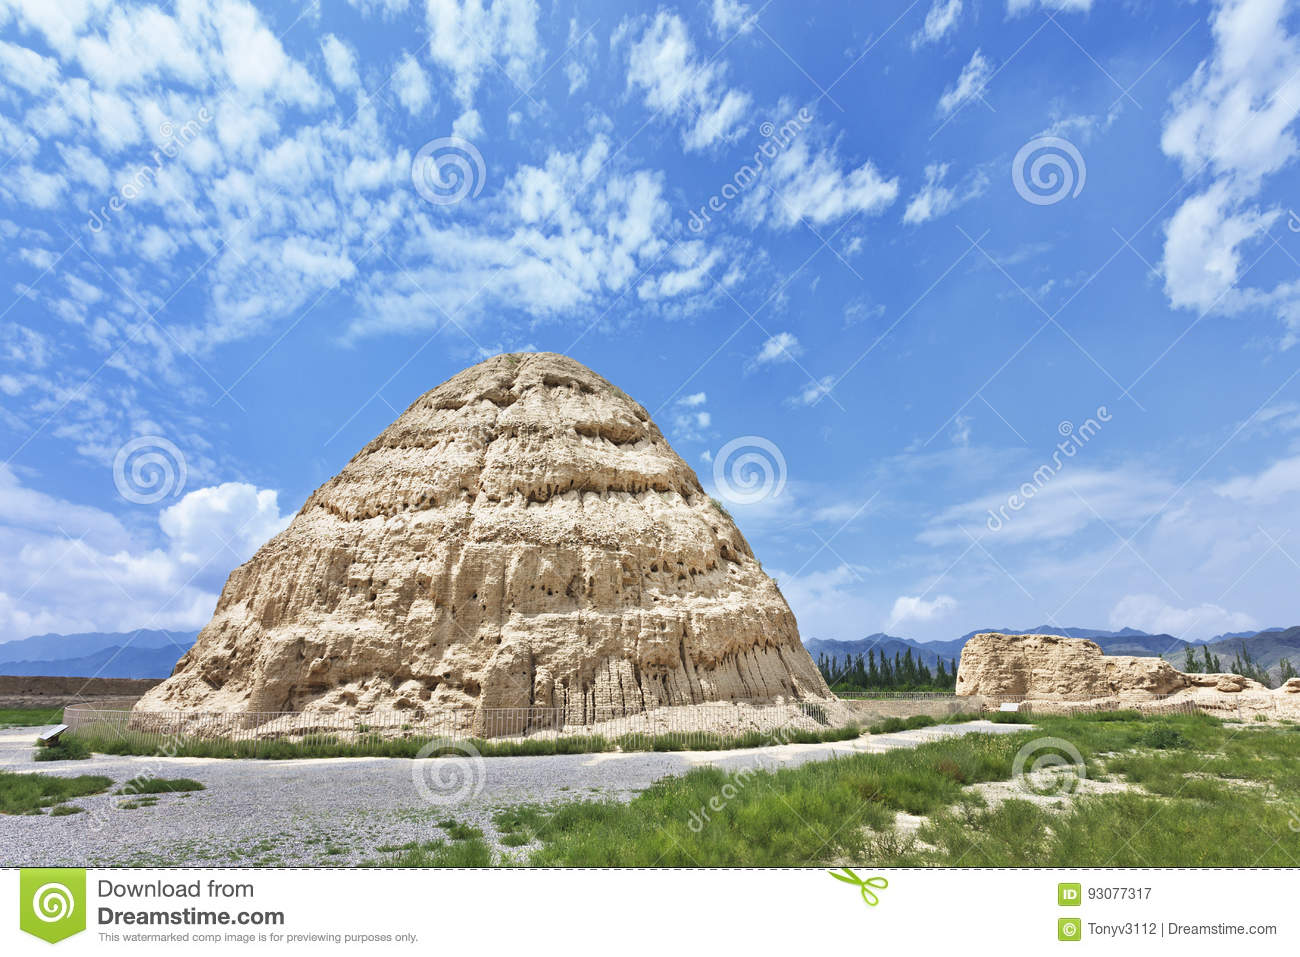 Xia Imperial Tombs occidentale province dans Yinchuan, le Ningxia, Chine